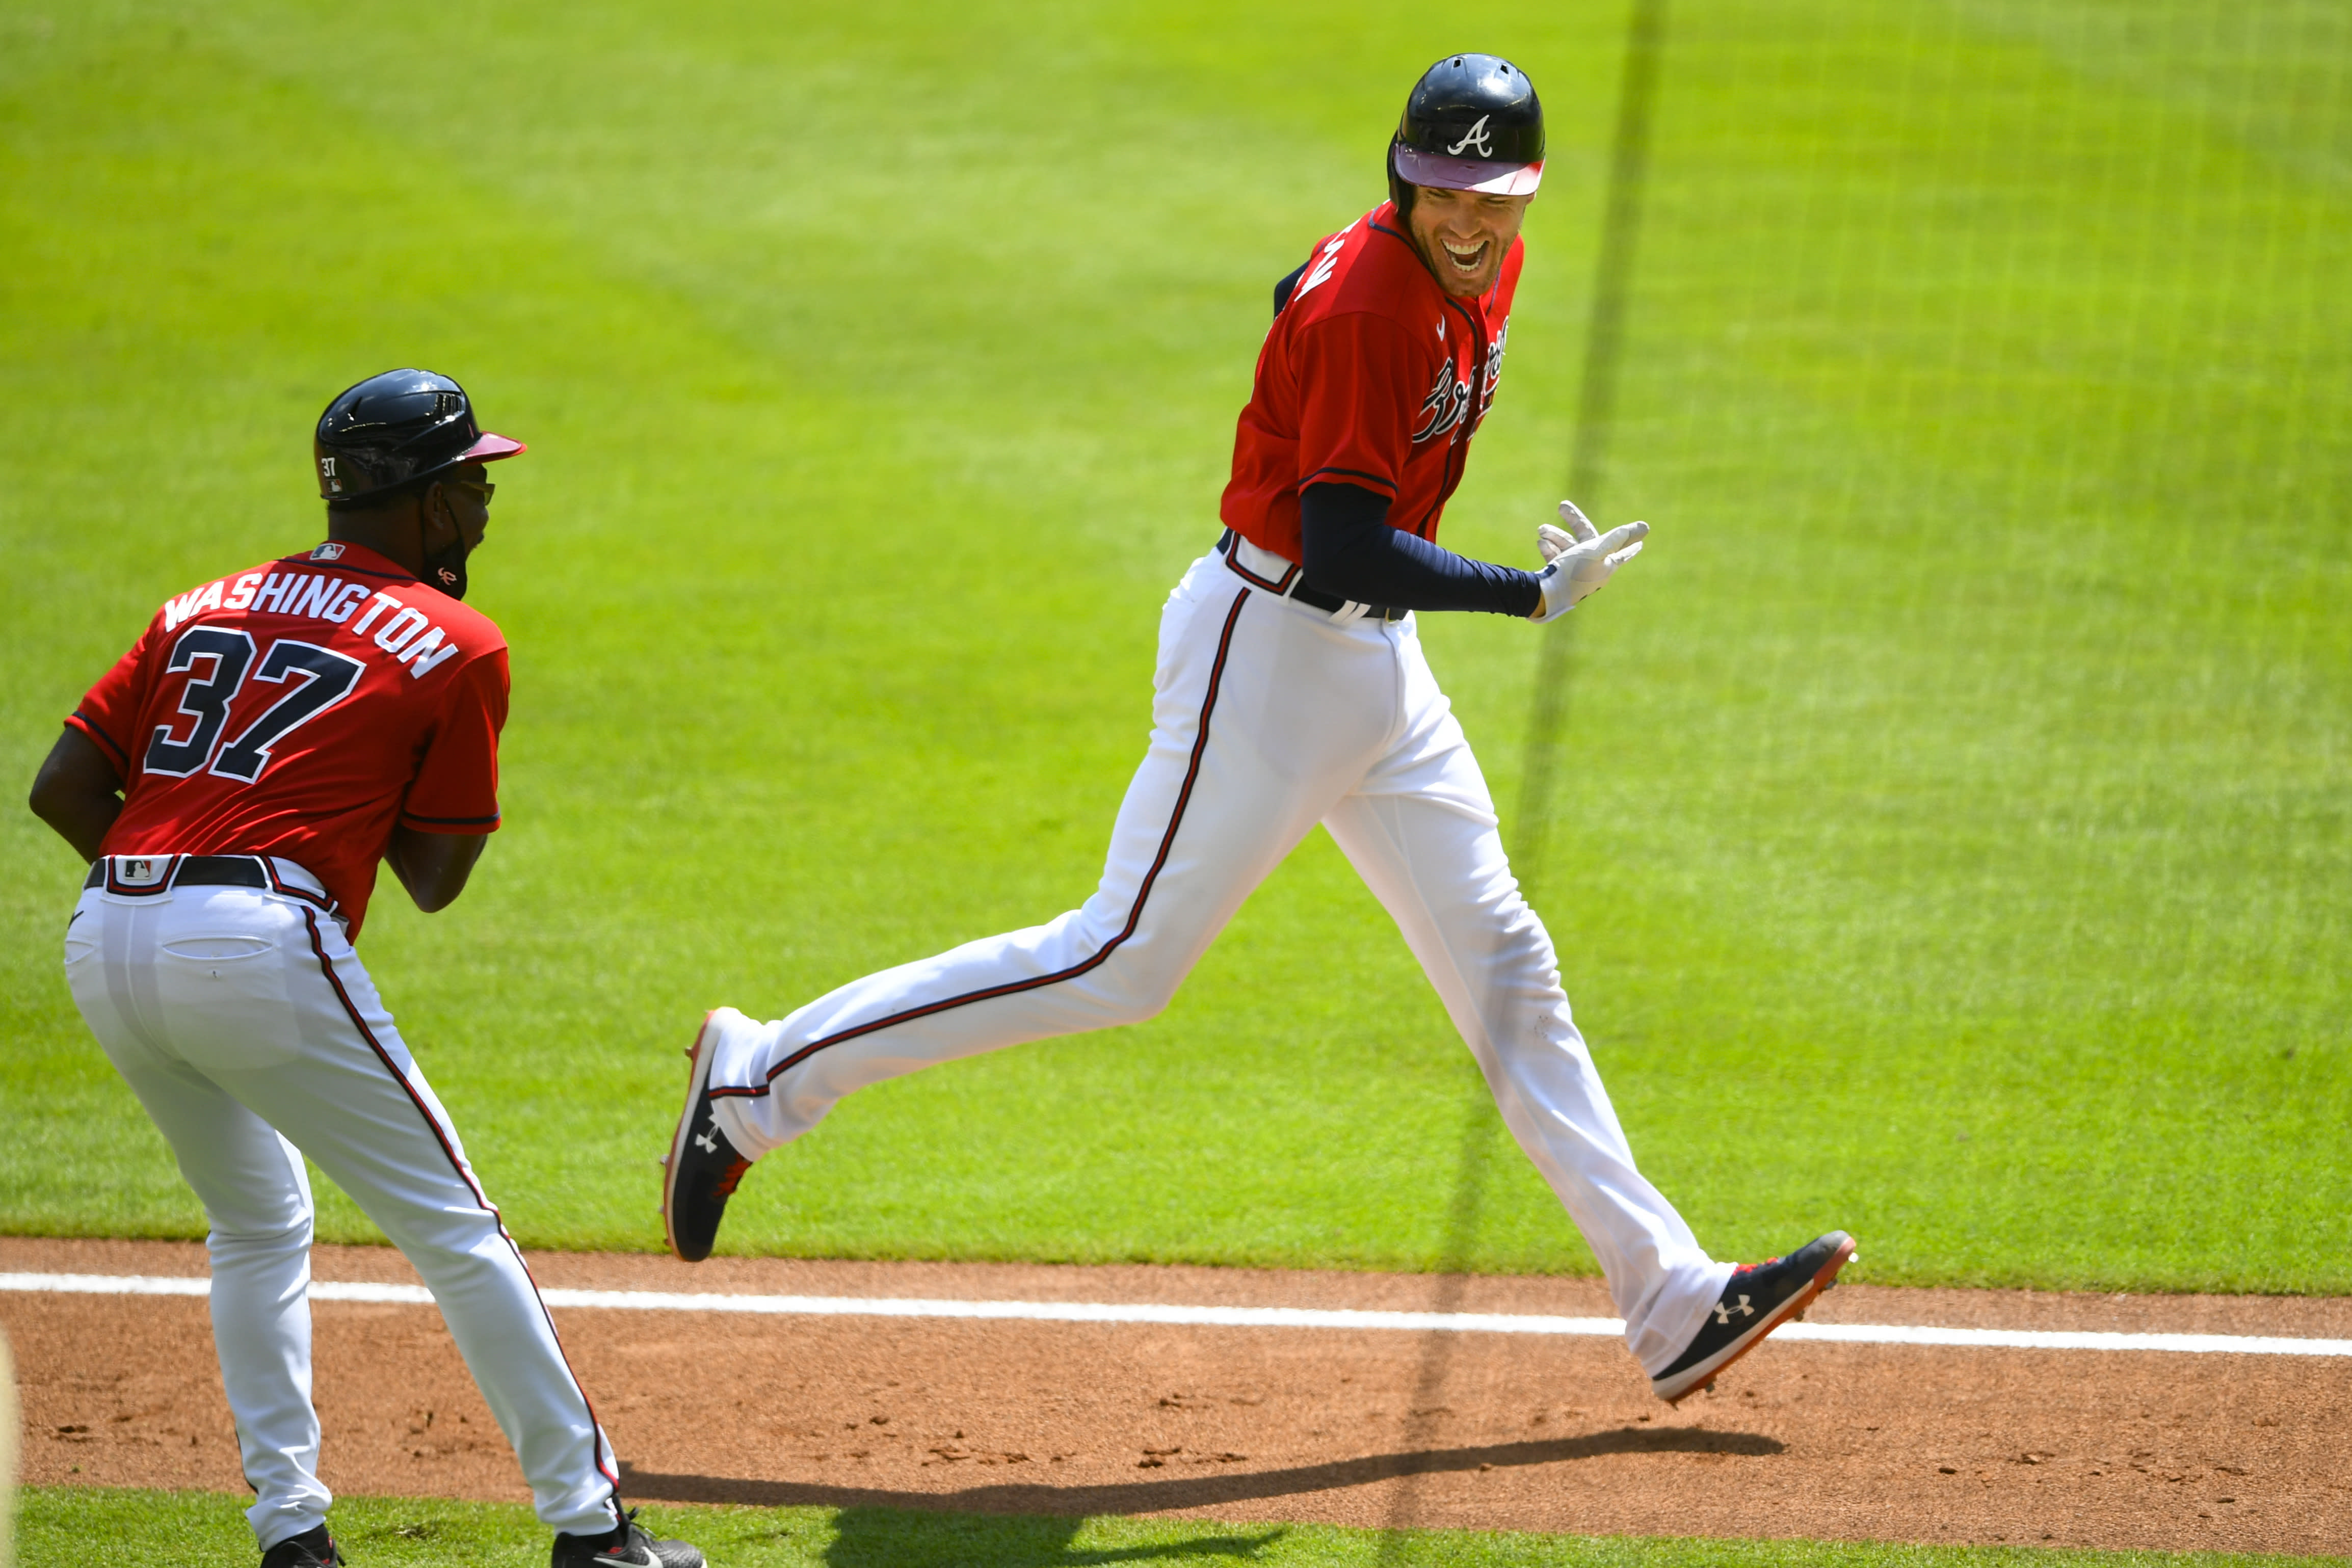 Atlanta Braves' Freddie Freeman reacts as he passes coach Ron Washington (37) after rounding third base during his grand slam home run in the sixth inning of a baseball game against the Washington Nationals, Sunday, Sept. 6, 2020, in Atlanta. (AP Photo/John Amis)